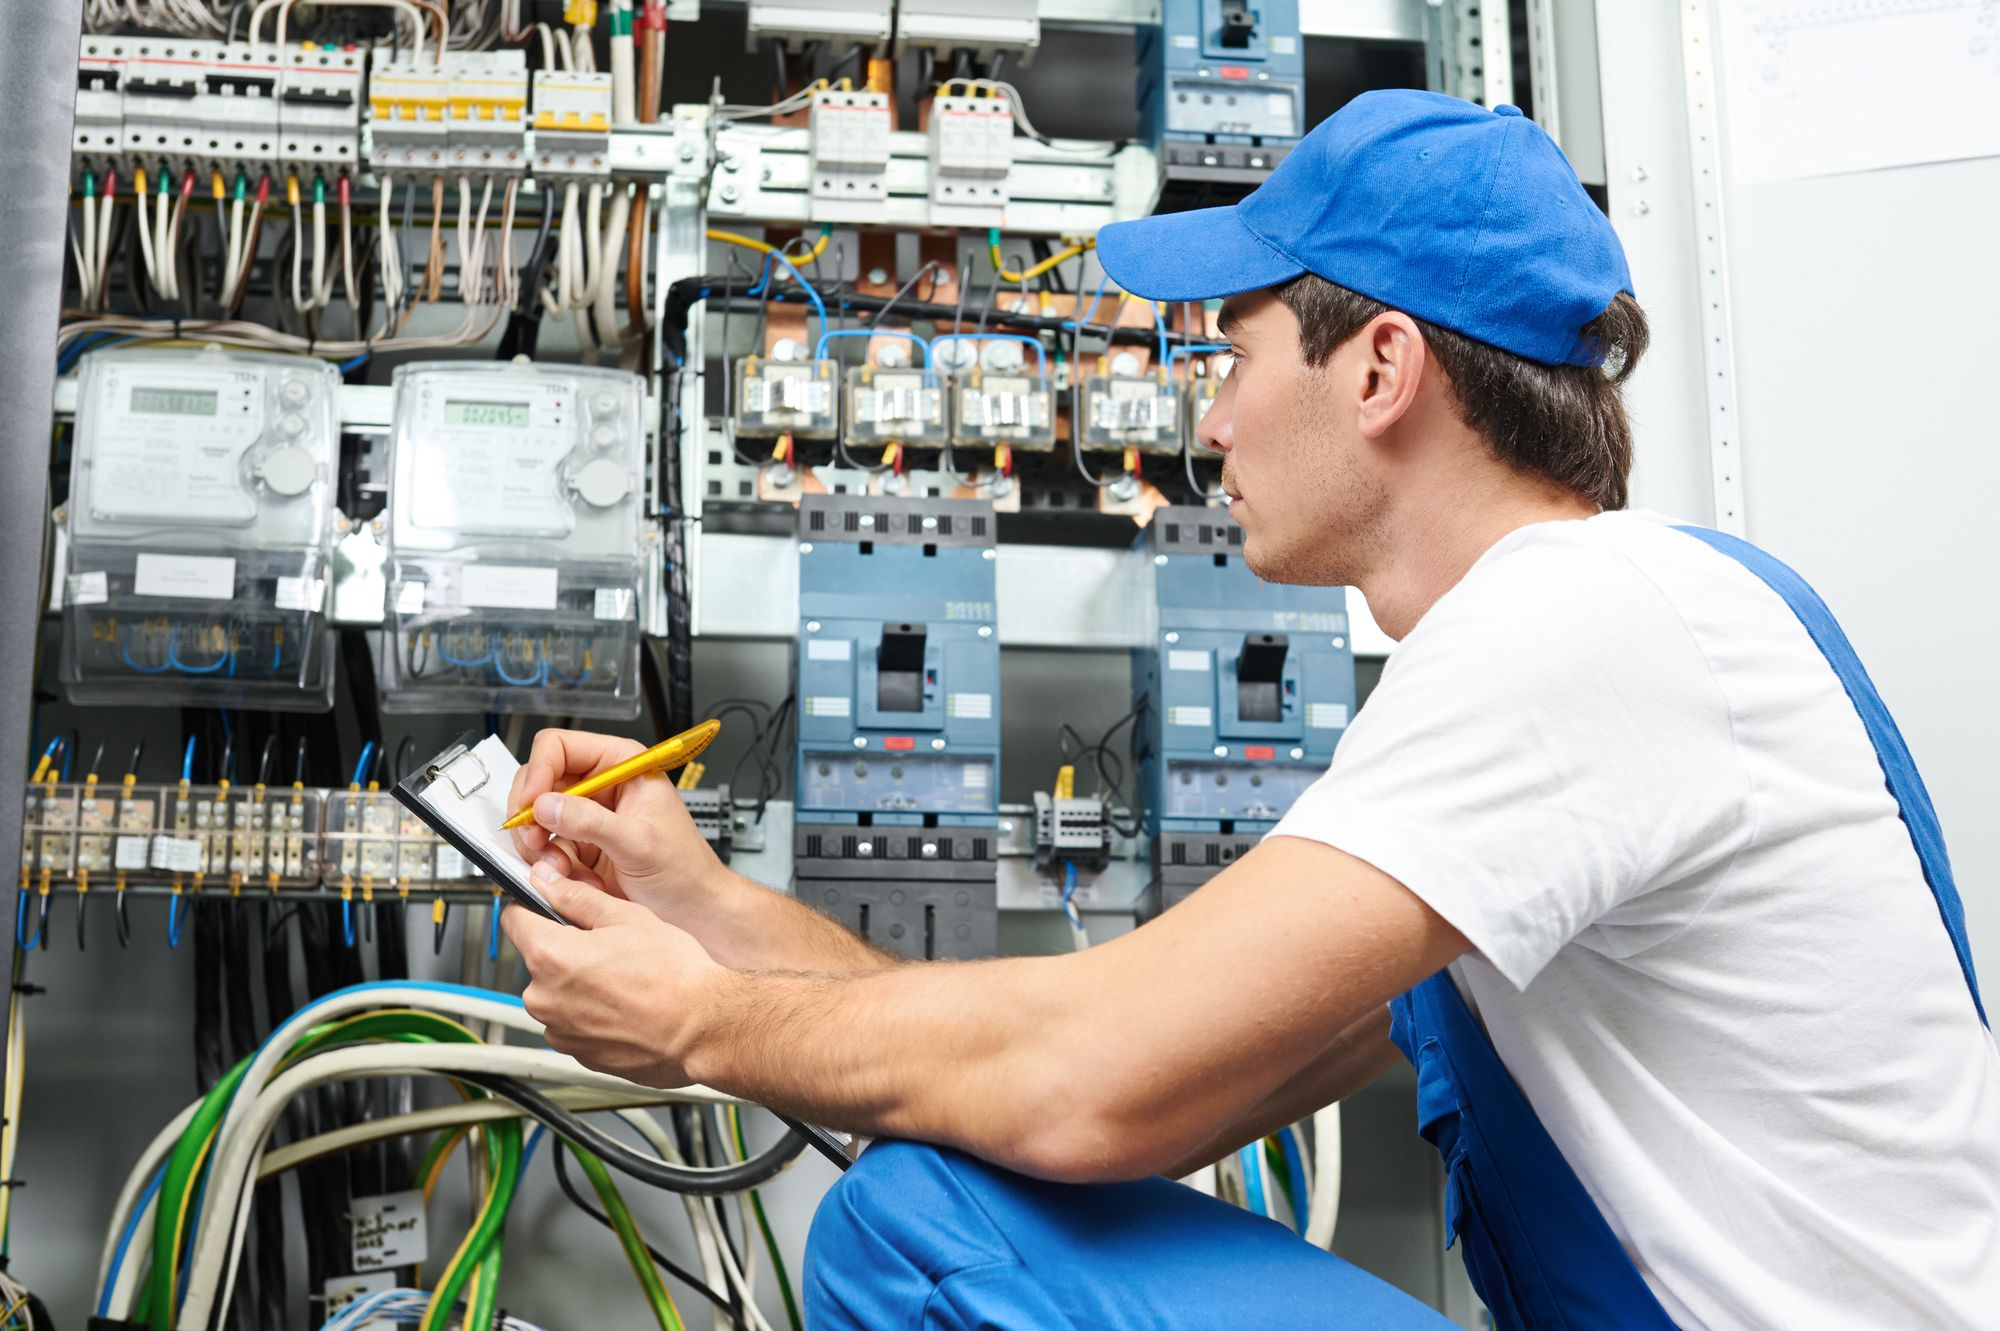 Steps to Become a High Paid Electrician